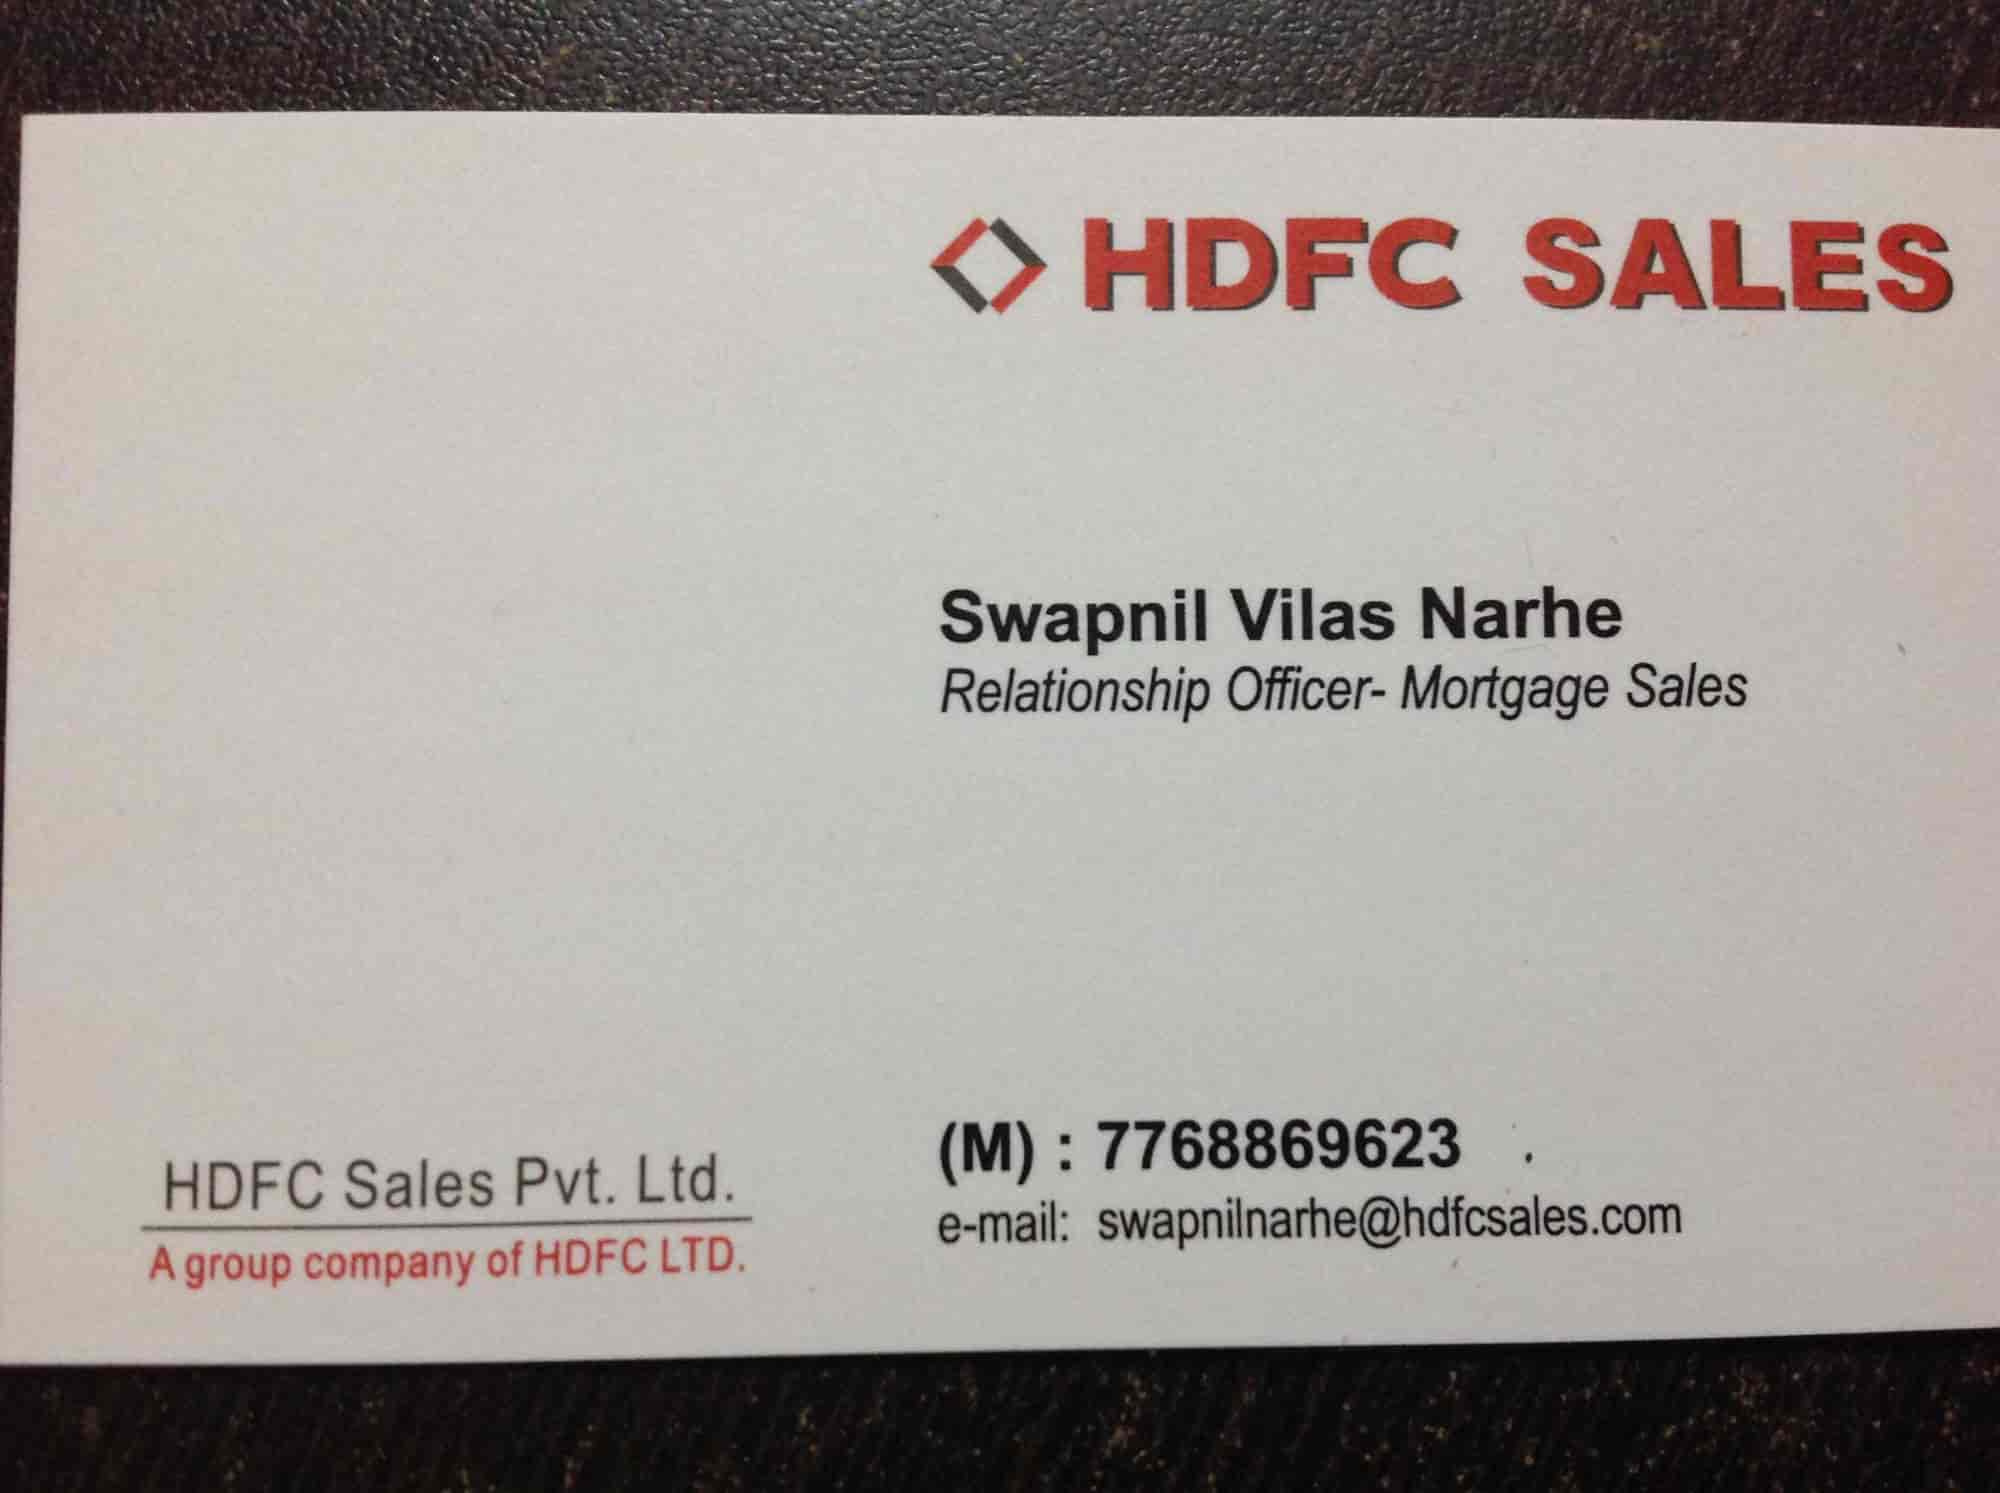 swapnil home loan services photos navipeth pune pictures images